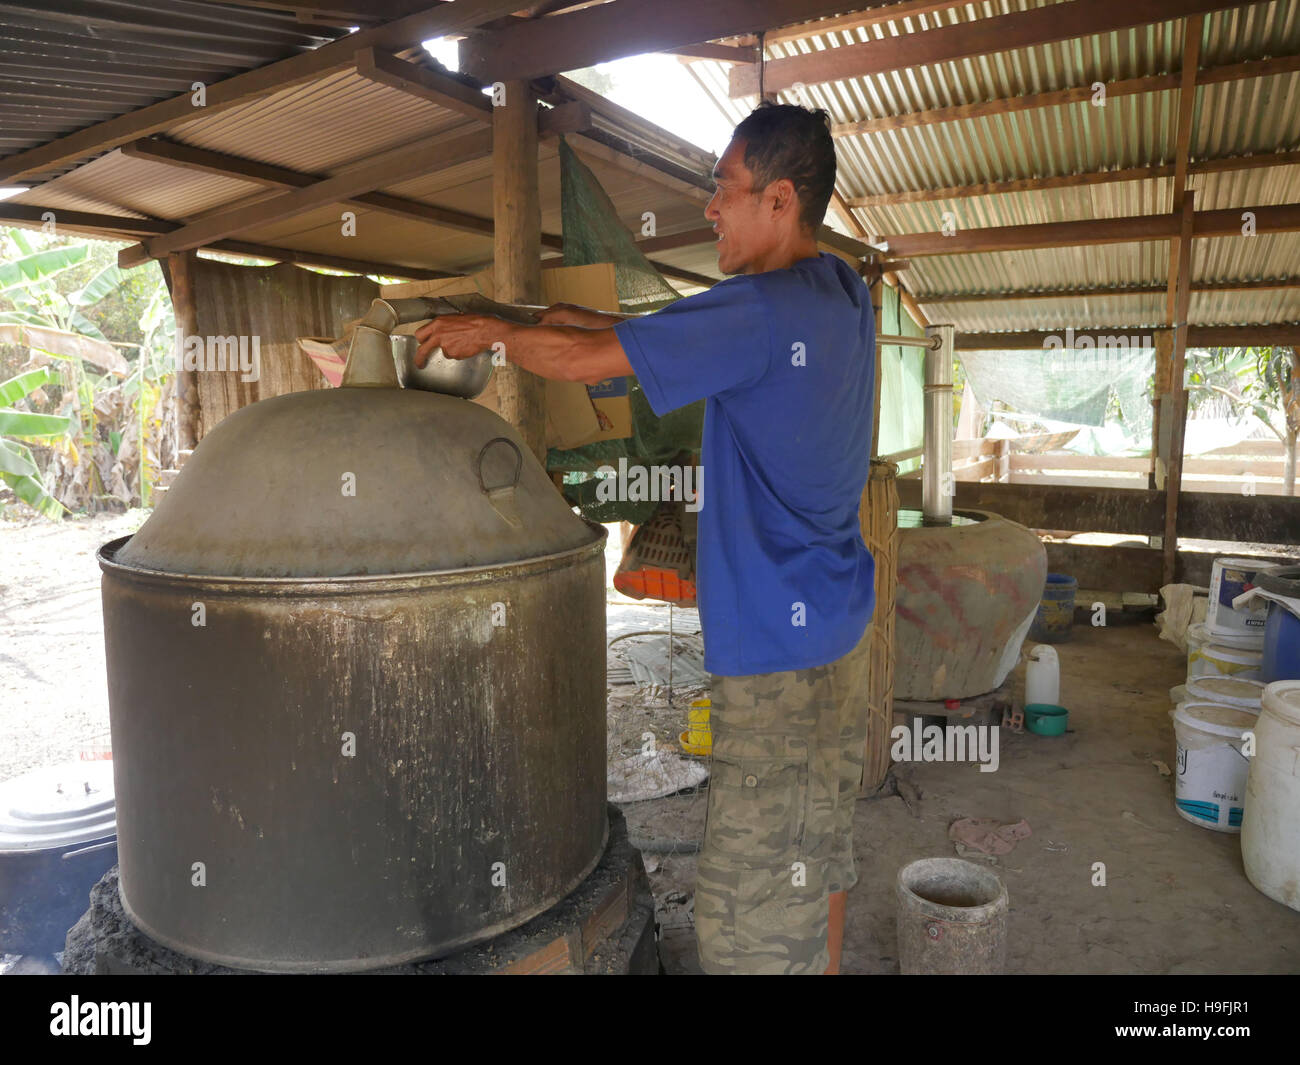 Cambodia, Stung Treng. Making alcohol with a still. Sean Sprague photo - Stock Image